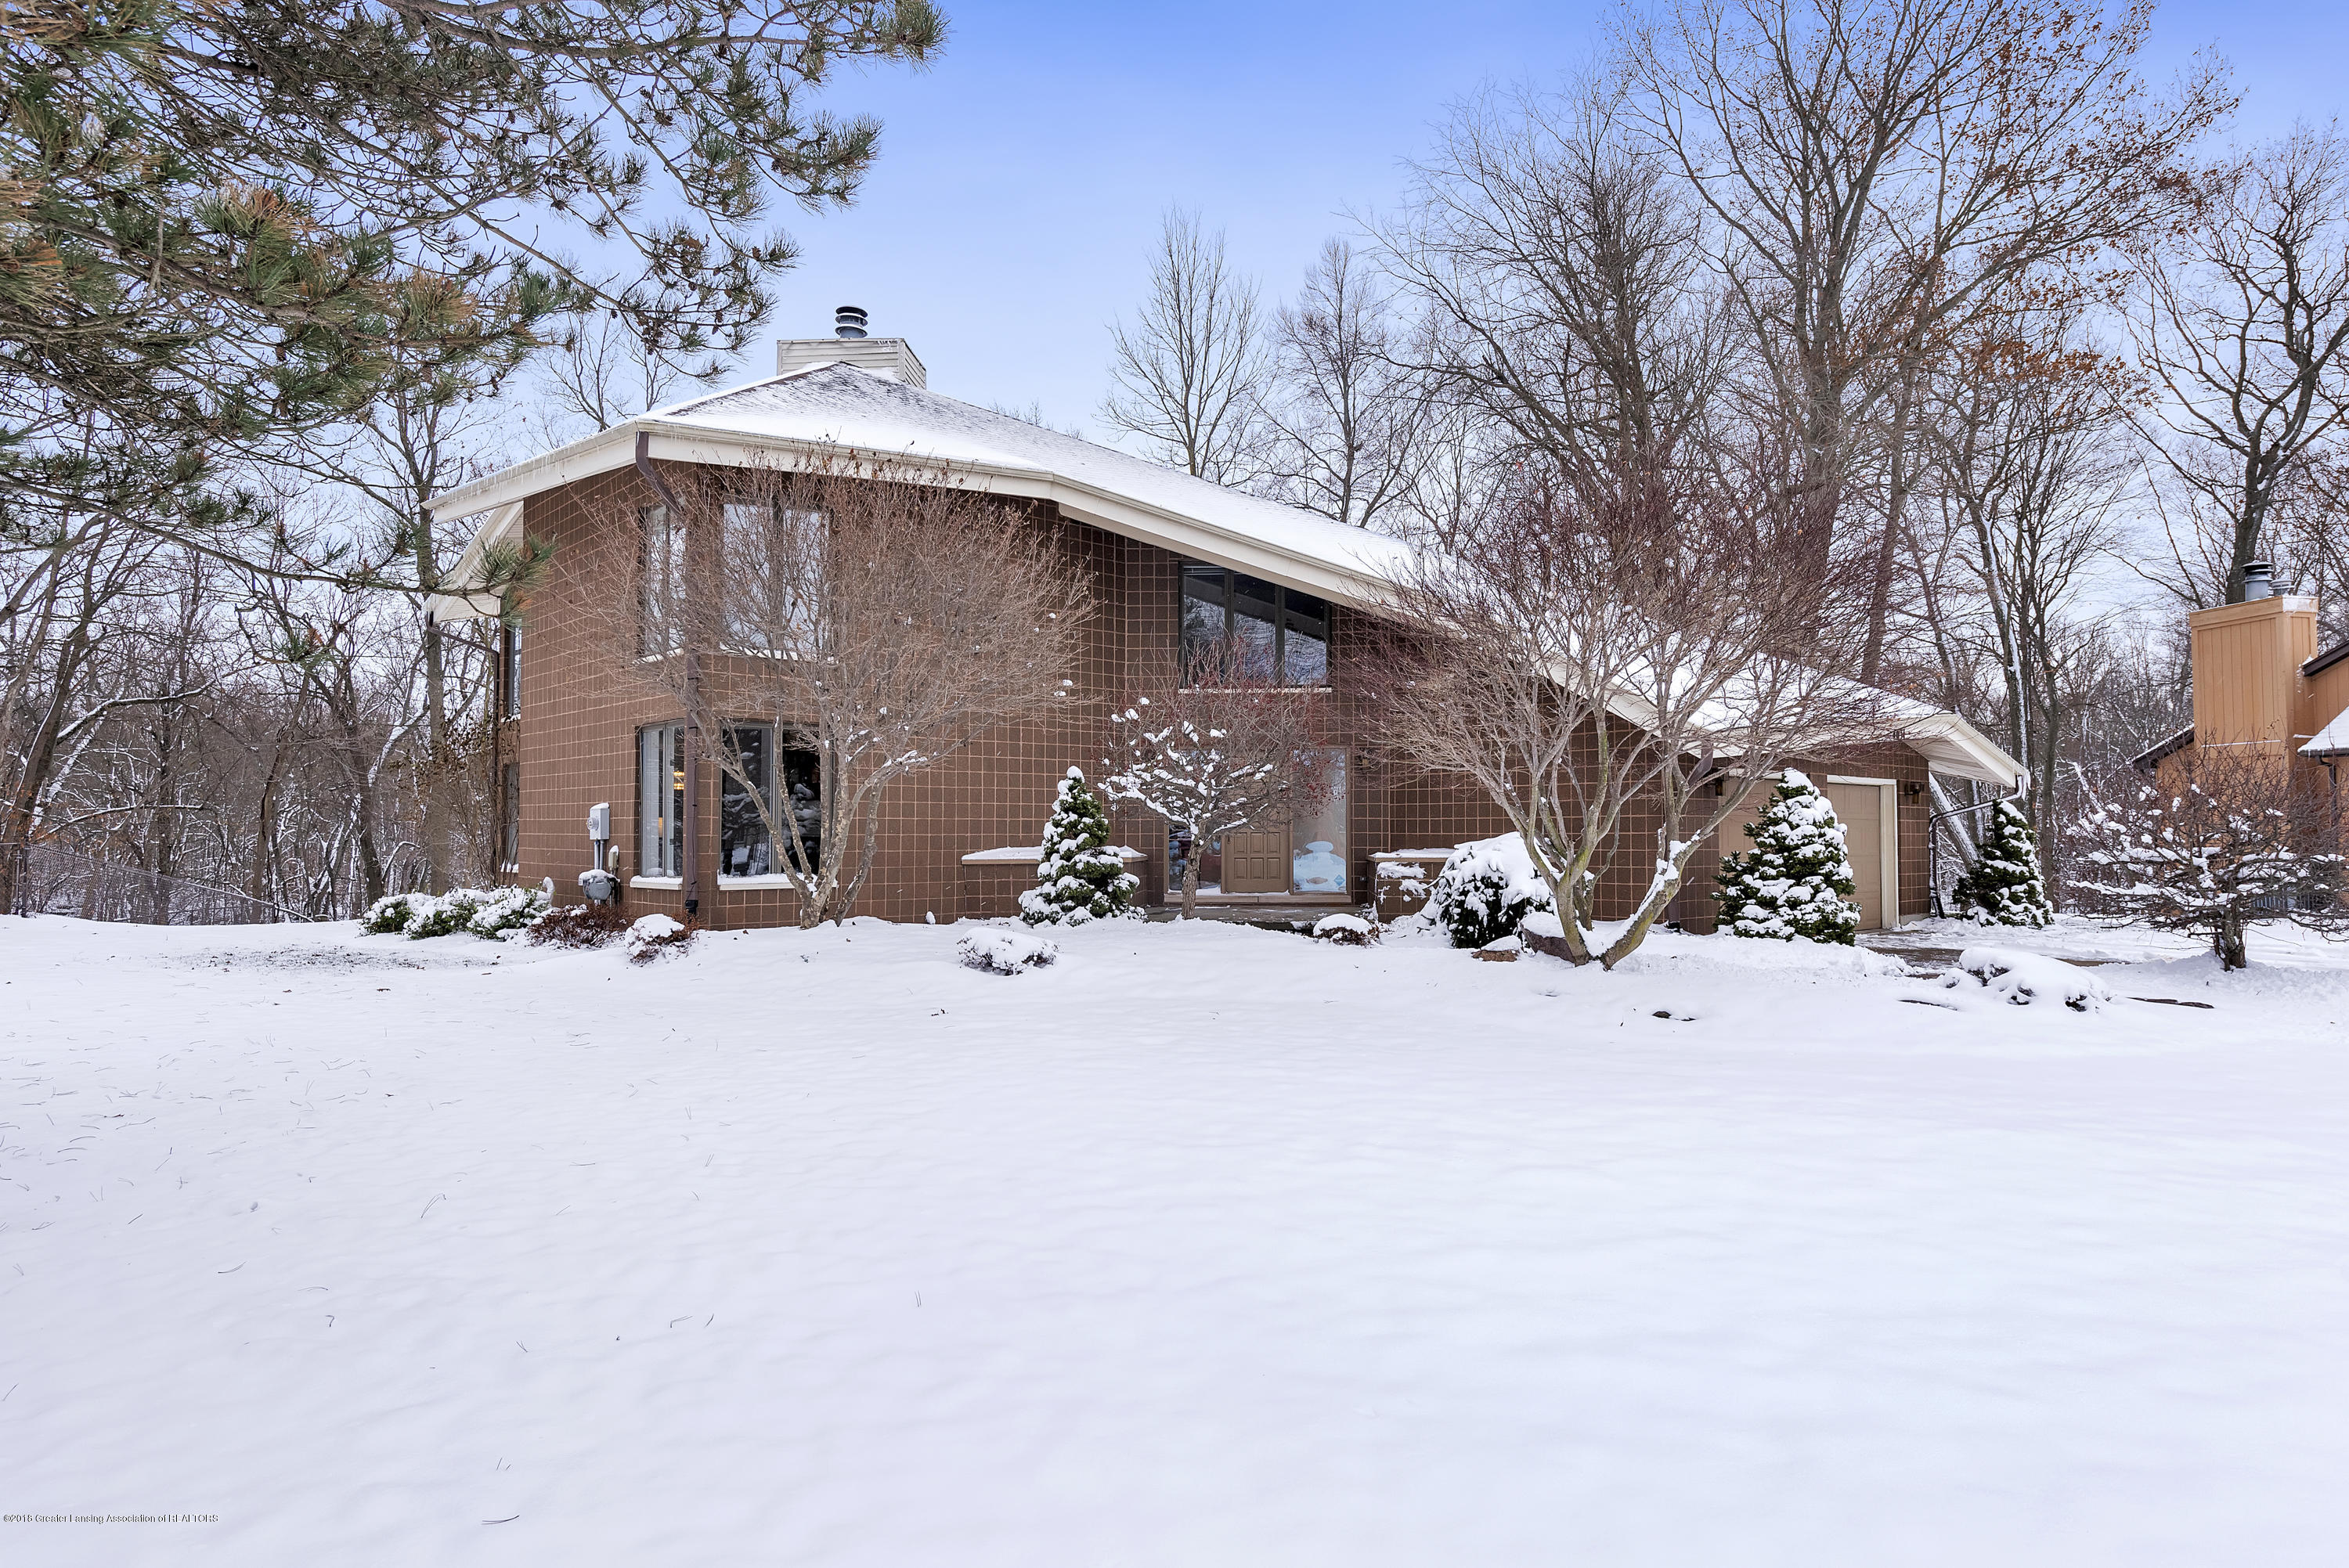 4031 Shoals Dr - 4031-Shoals-Drive-Okemos-MI-48864-window - 6